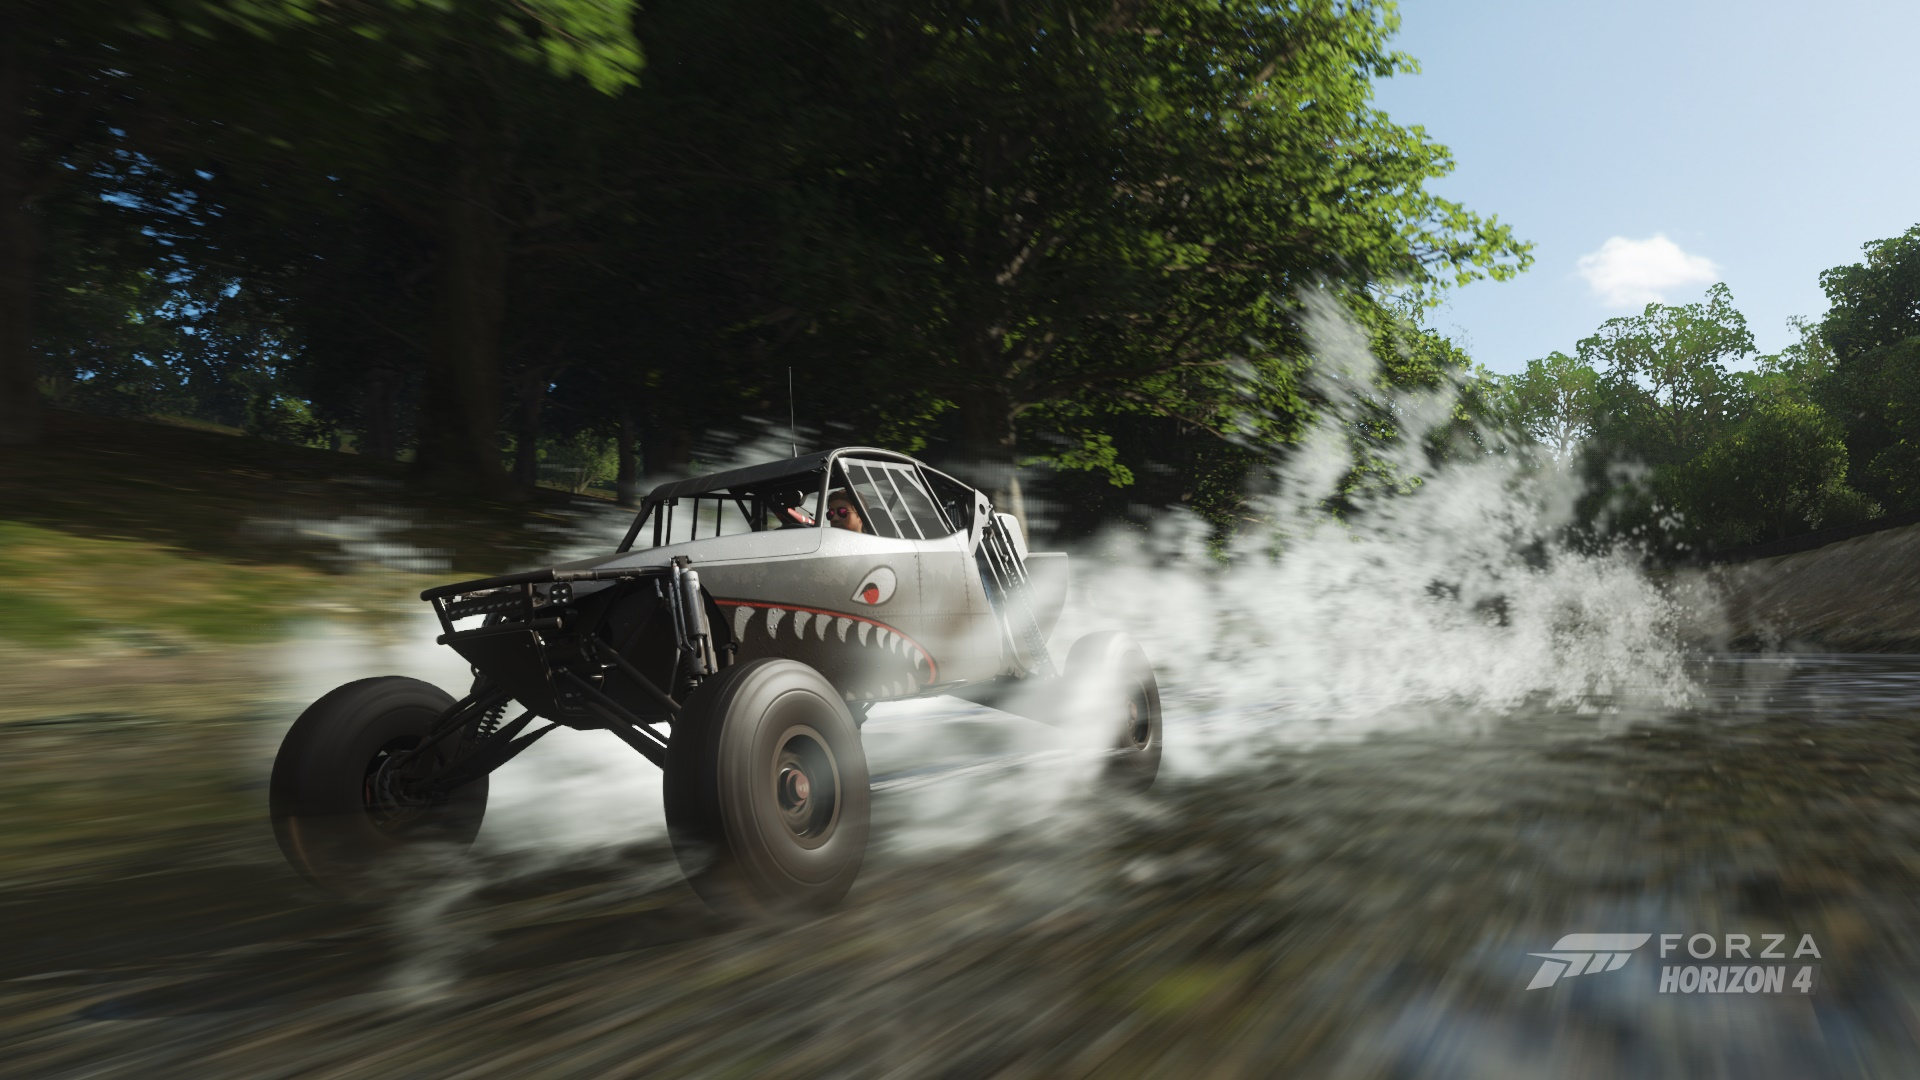 Who's Playing the Forza Horizon 4 Early Access - And What Do